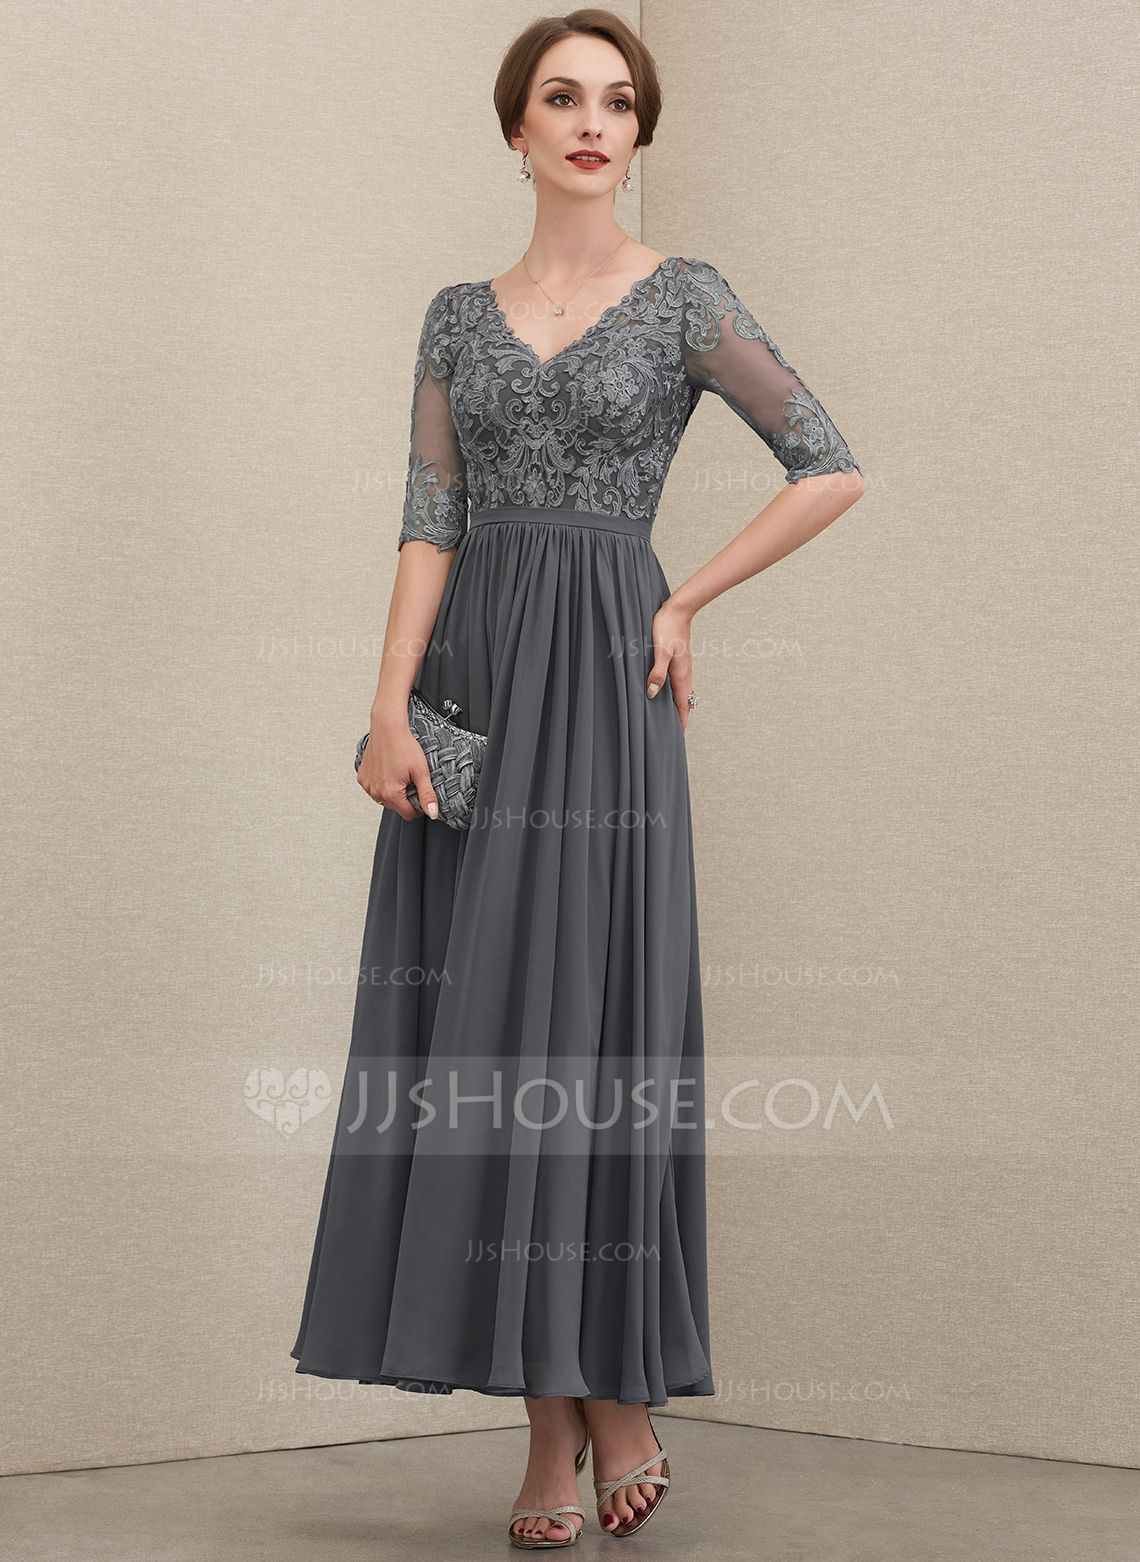 Us 170 00 A Line V Neck Ankle Length Chiffon Lace Mother Of The Bride Dress Jj S House In 2020 Lace Evening Dresses Mother Of The Bride Dresses Mother Of The Bride Dresses Long